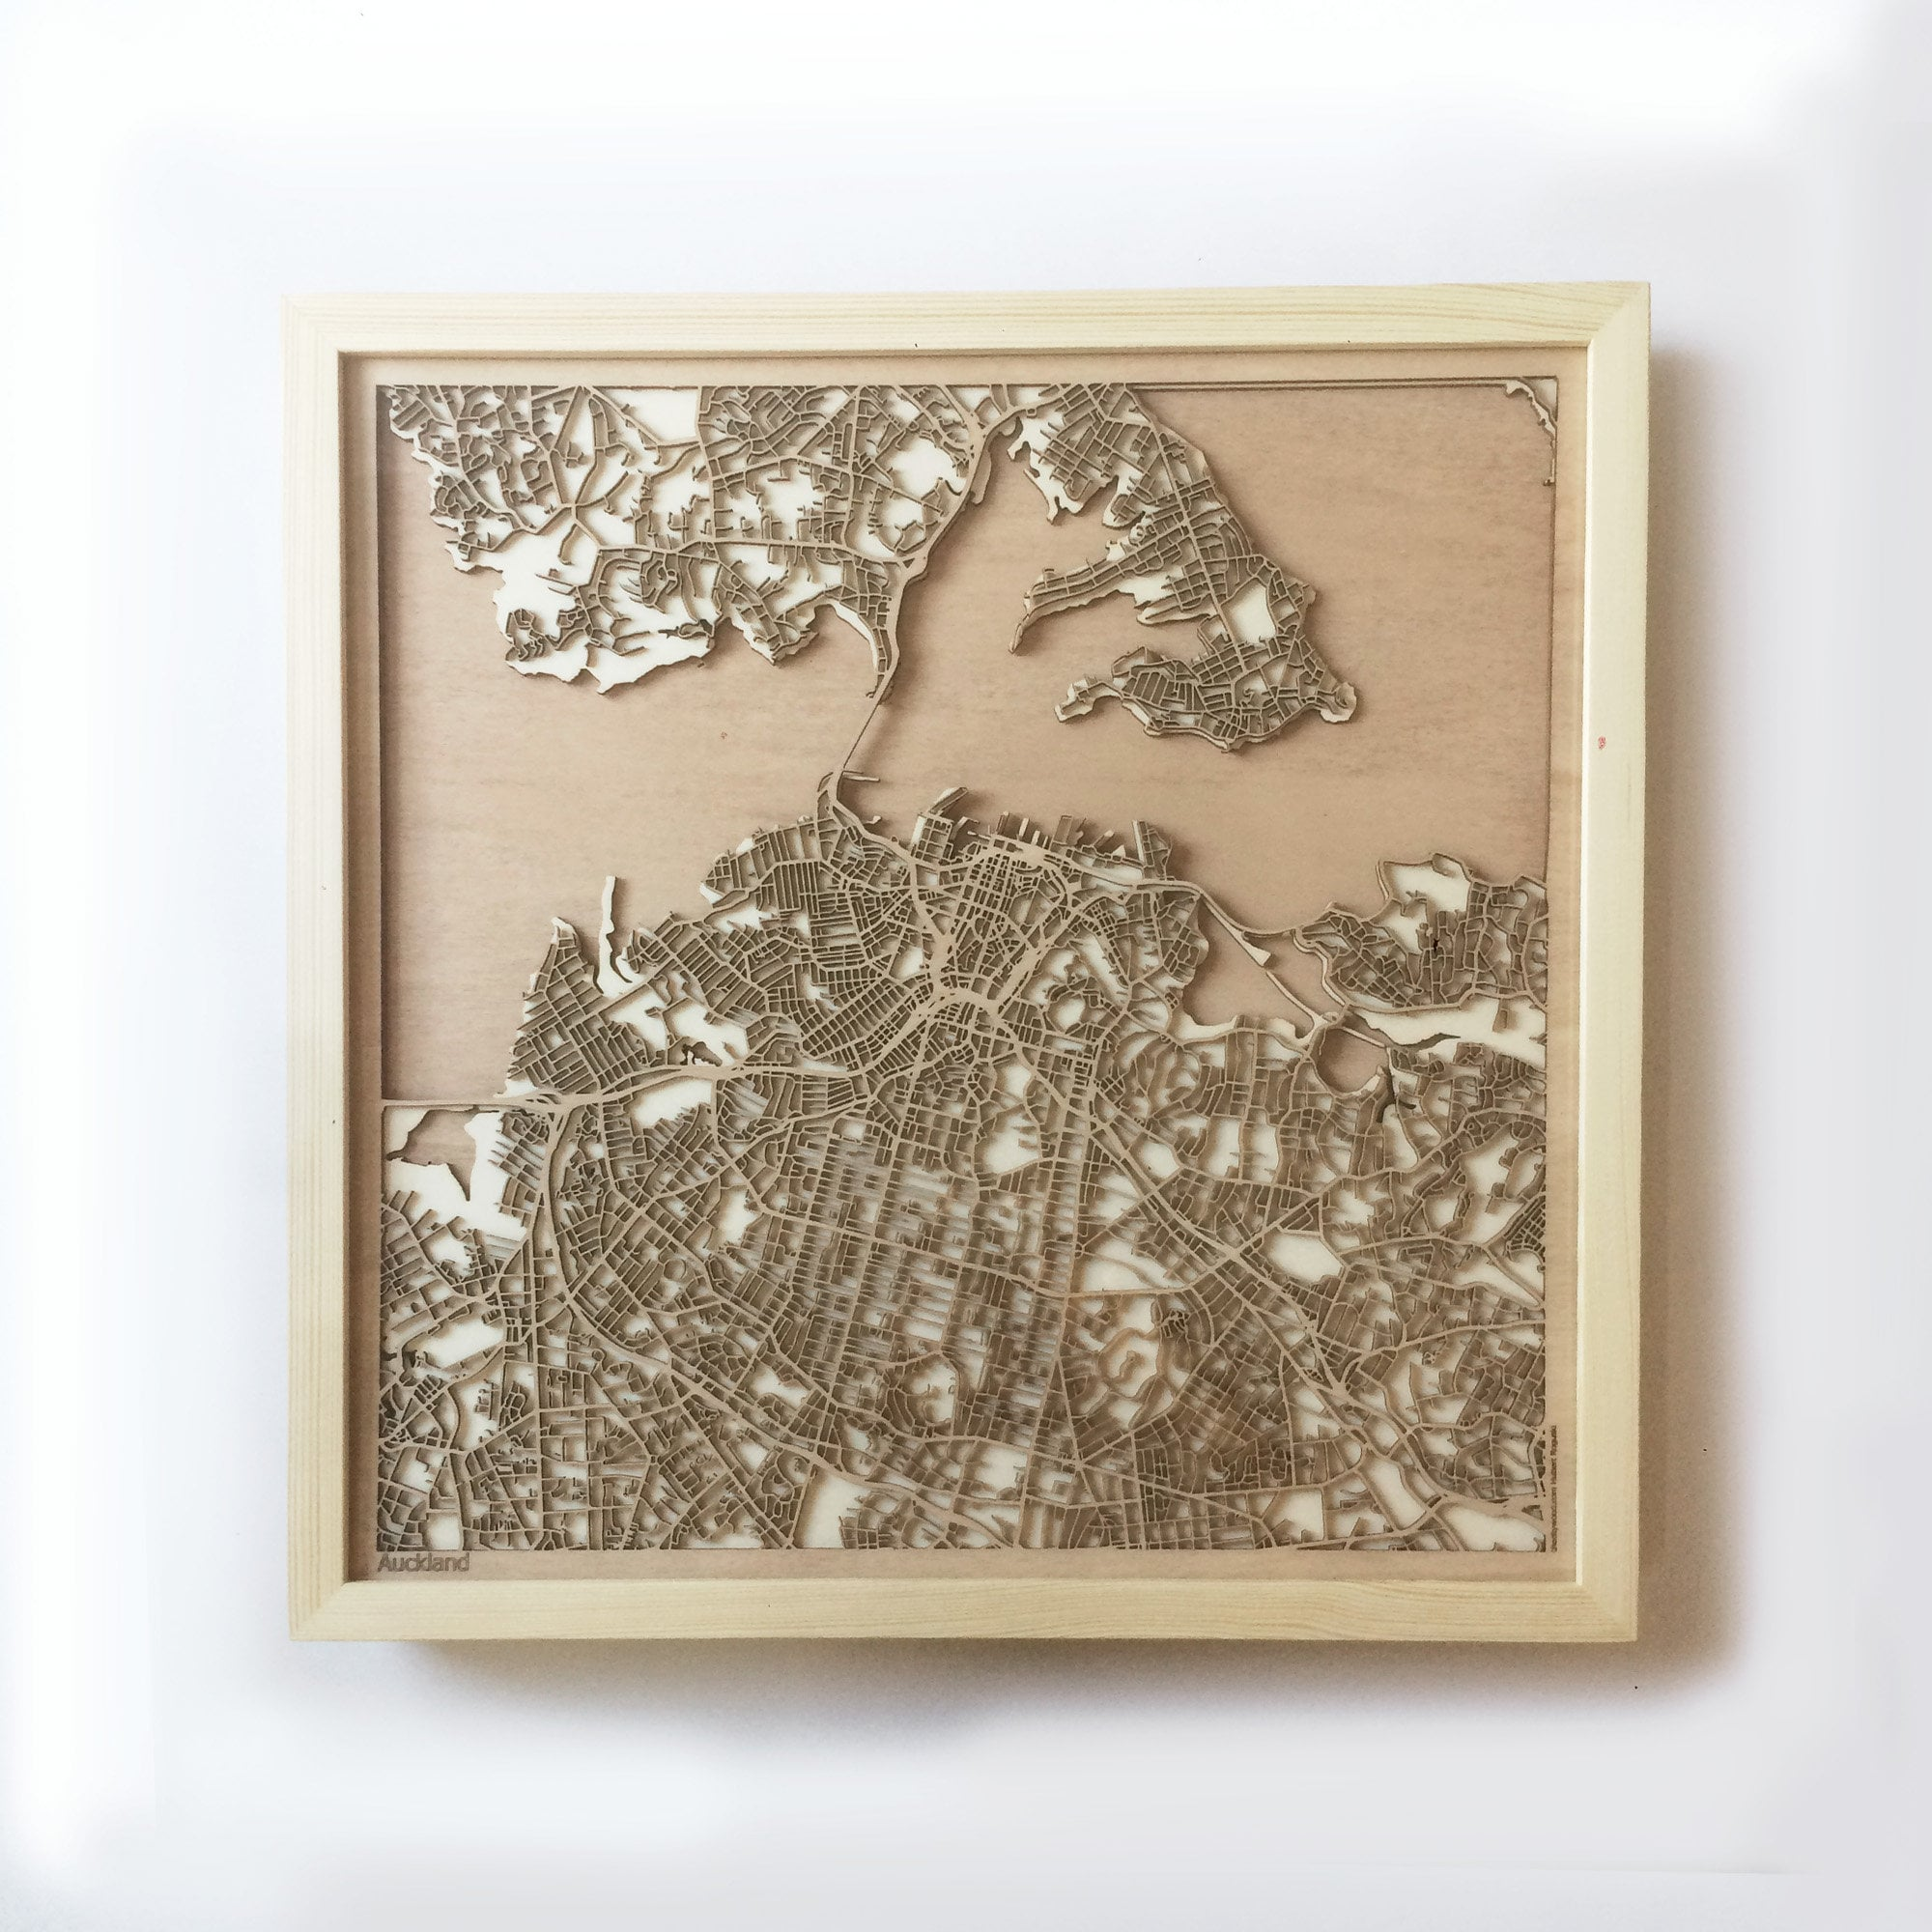 Wedding Gifts Auckland: Laser Cut Wood Streets Maps 3d